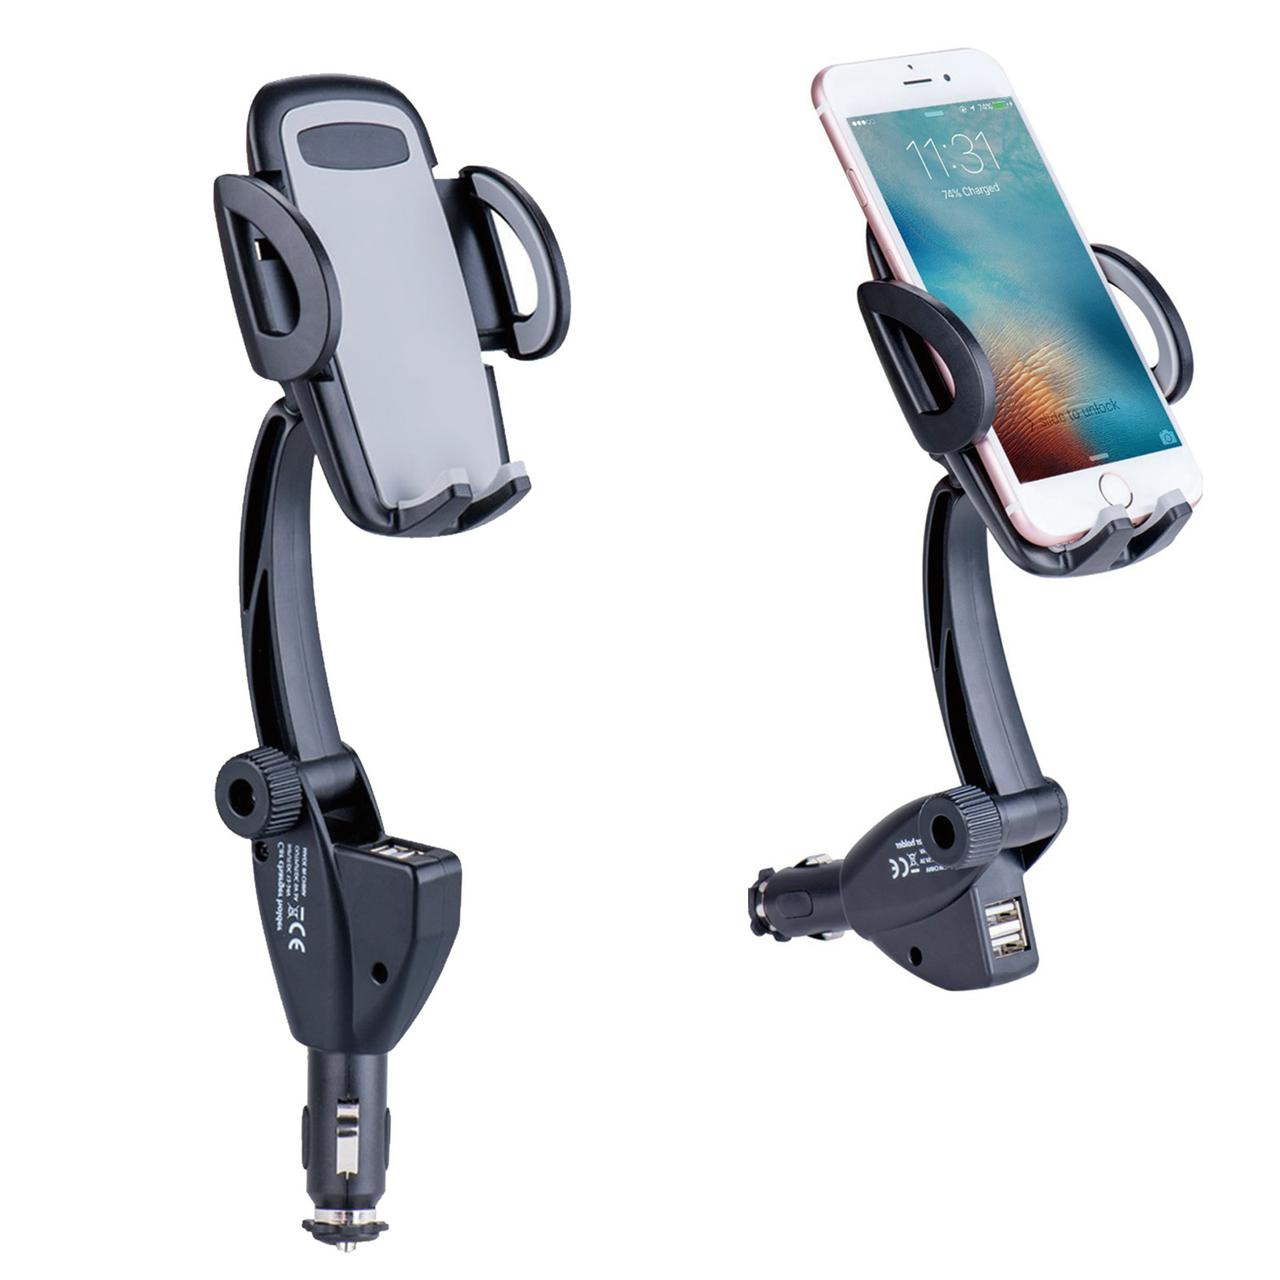 3-In-1 Cigarette Lighter Car Mount + Voltage Detector, TSV Car Mount Charger Holder Cradle w/ Dual USB 3.1A Charger, Display Voltage Current for iPhone8 X 7 6s 6 5s Samsung S8 S7 S6 S5